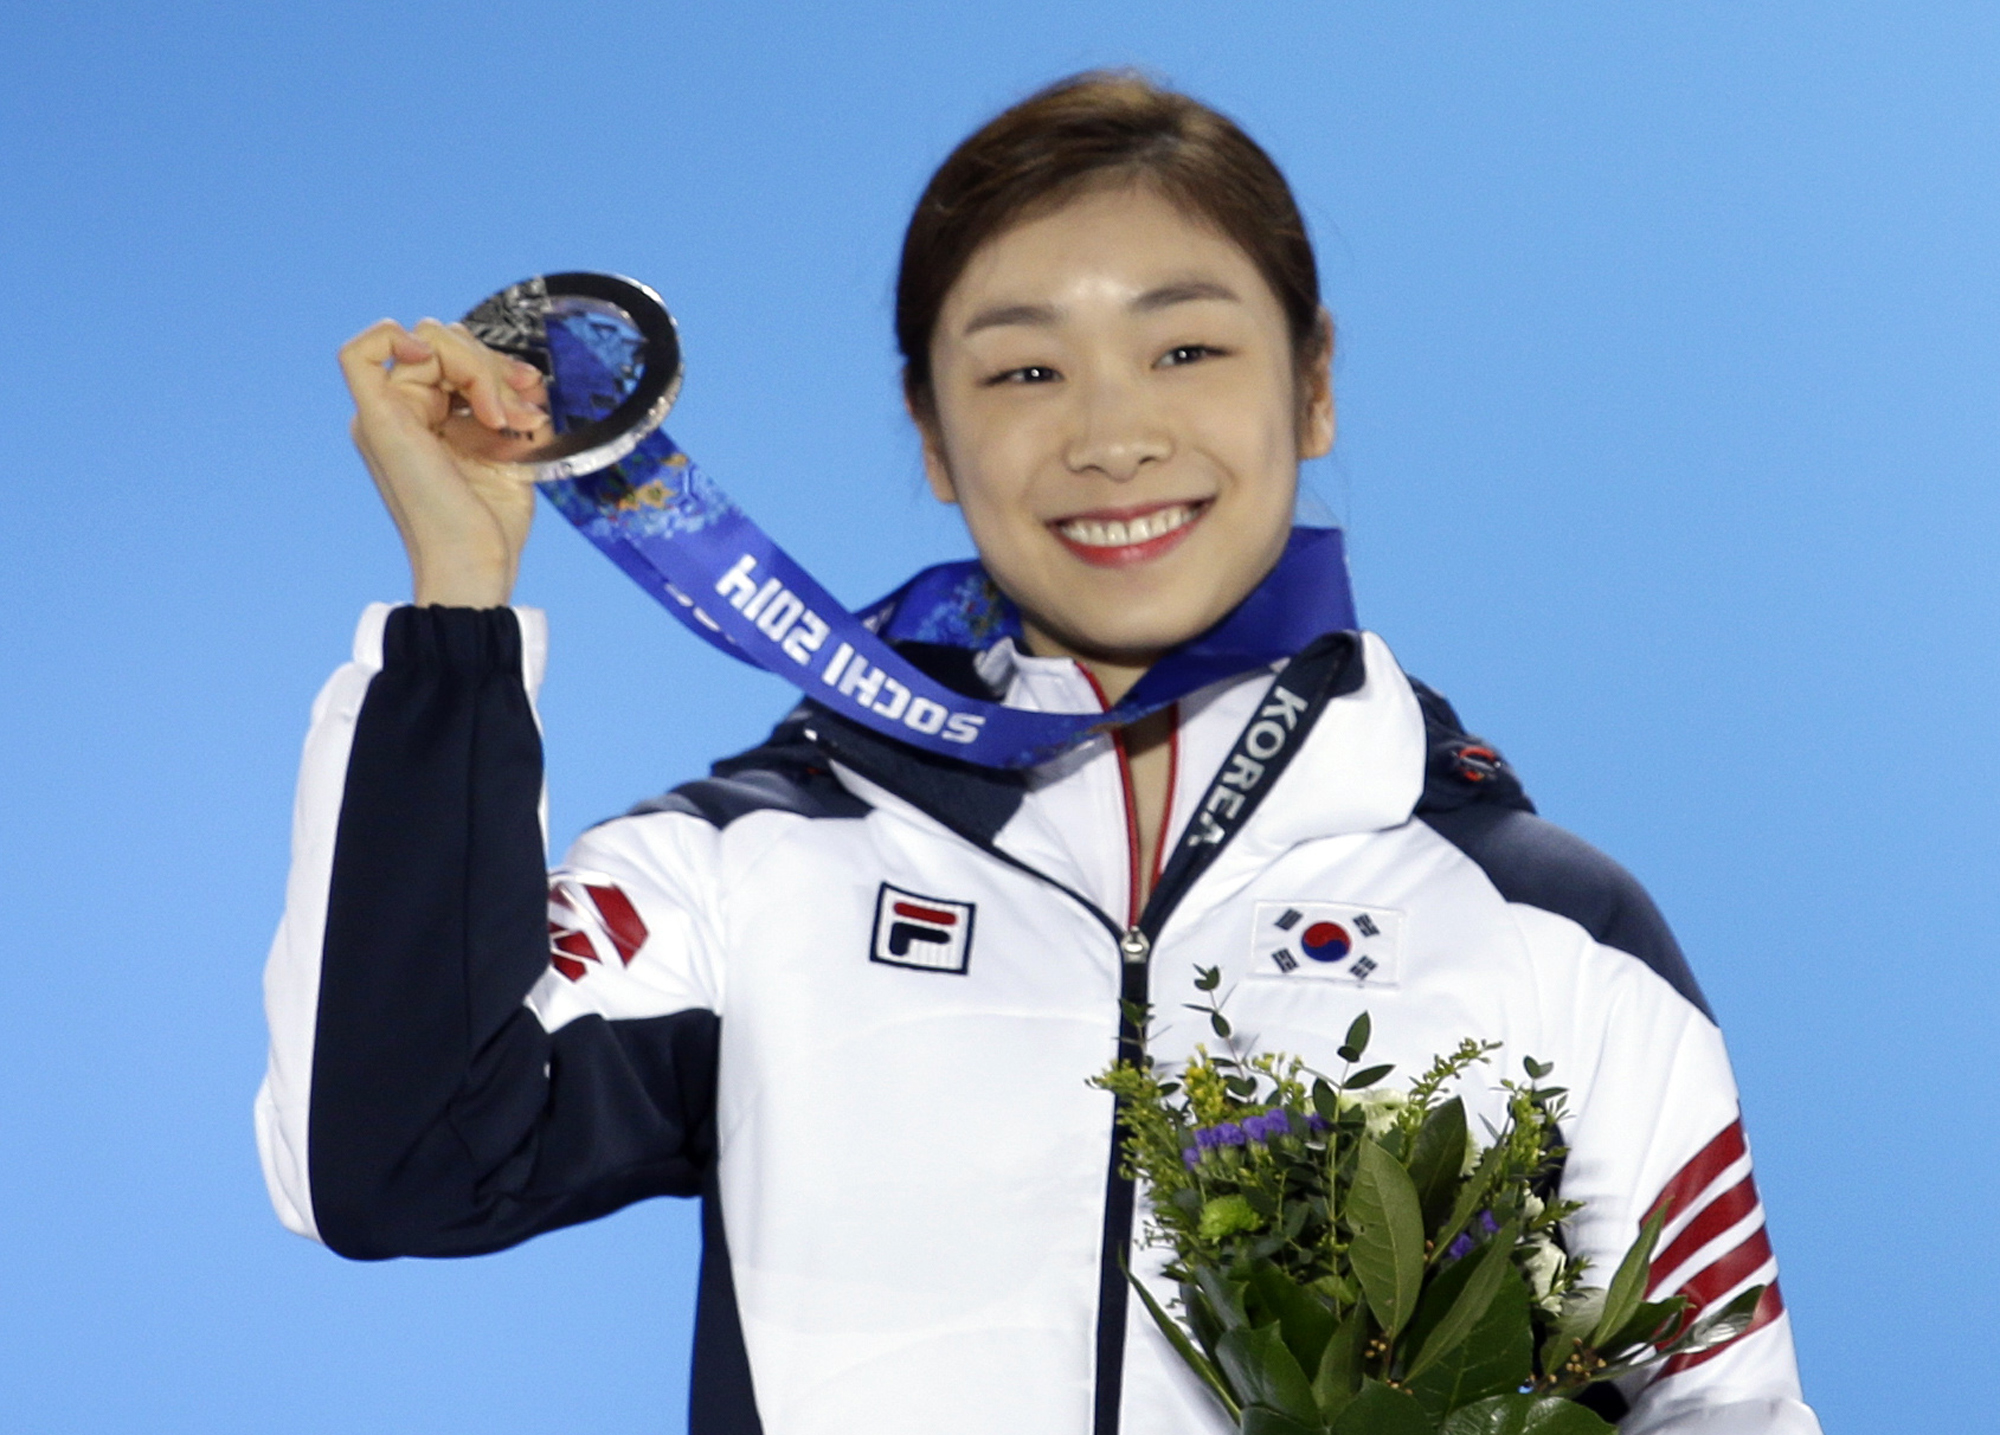 FILE - In this Feb. 21, 2014 file photo, women's free skate figure skating silver medalist Yuna Kim of South Korea smiles during the medals ceremony at the 2014 Winter Olympics, in Sochi, Russia. South Korean sports officials said Tuesday, March 25, 2014, they are preparing to file a formal complaint with the International Skating Union over the judging of the women's figure skating competitions at the Sochi Olympics. Many South Koreans allege that questionable judging denied Kim a second straight figure skating gold medal. (AP Photo/David Goldman, File)